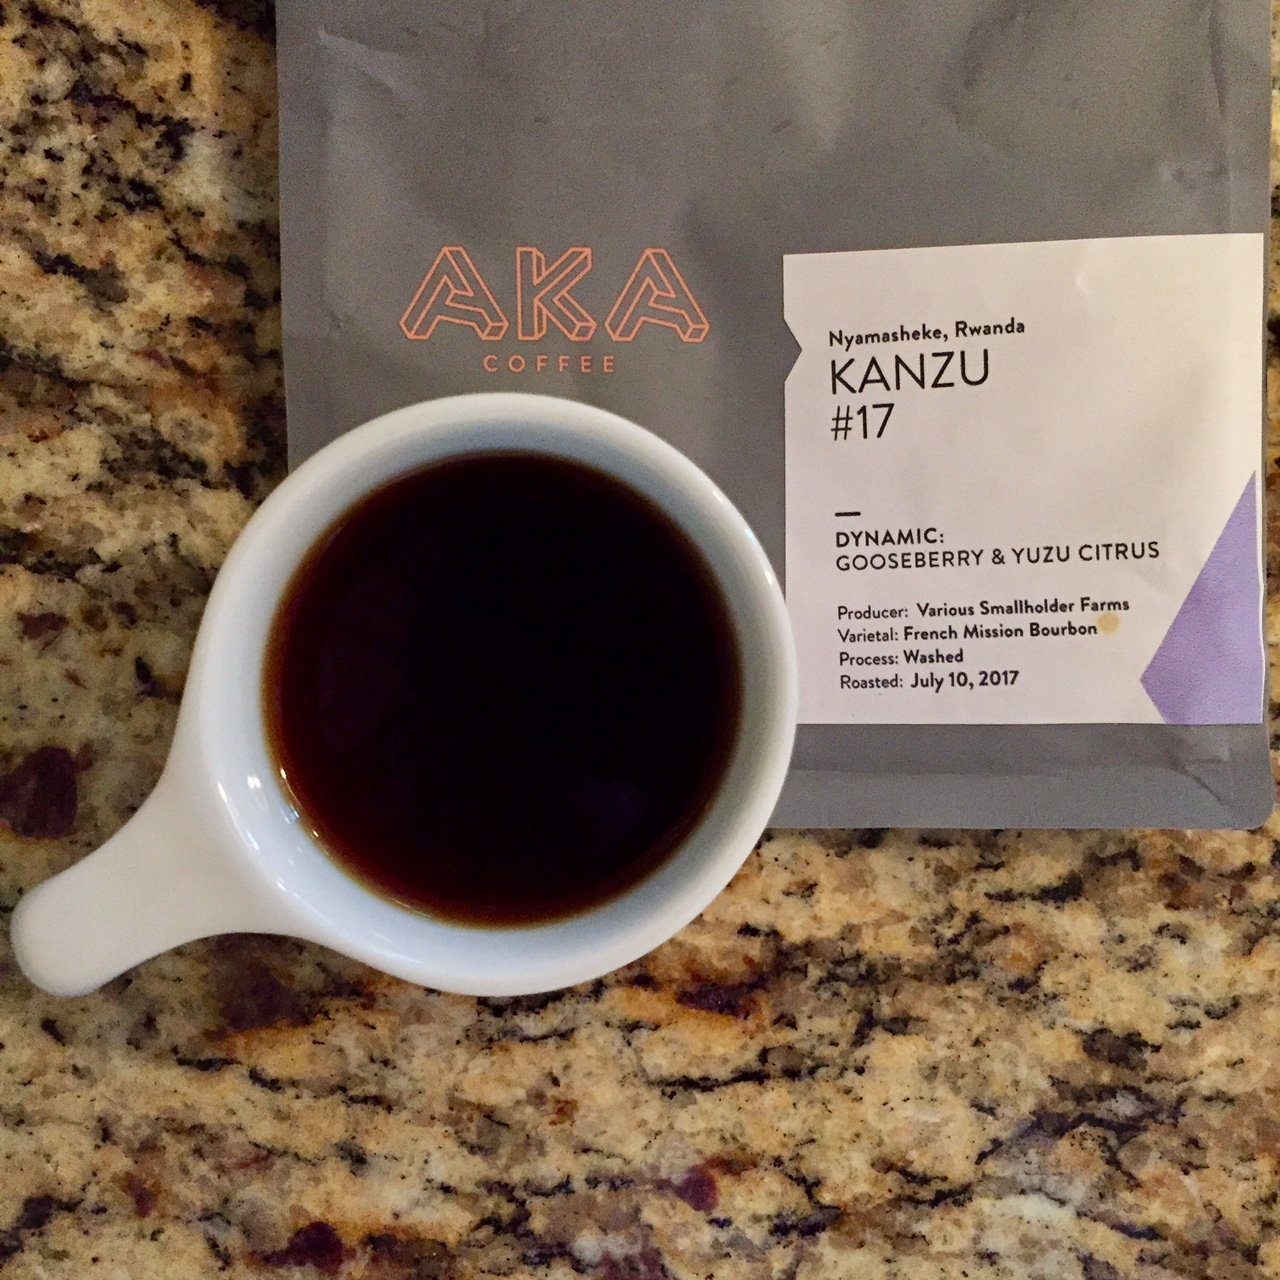 The coffee was very smooth and sweet, with very little acidity.